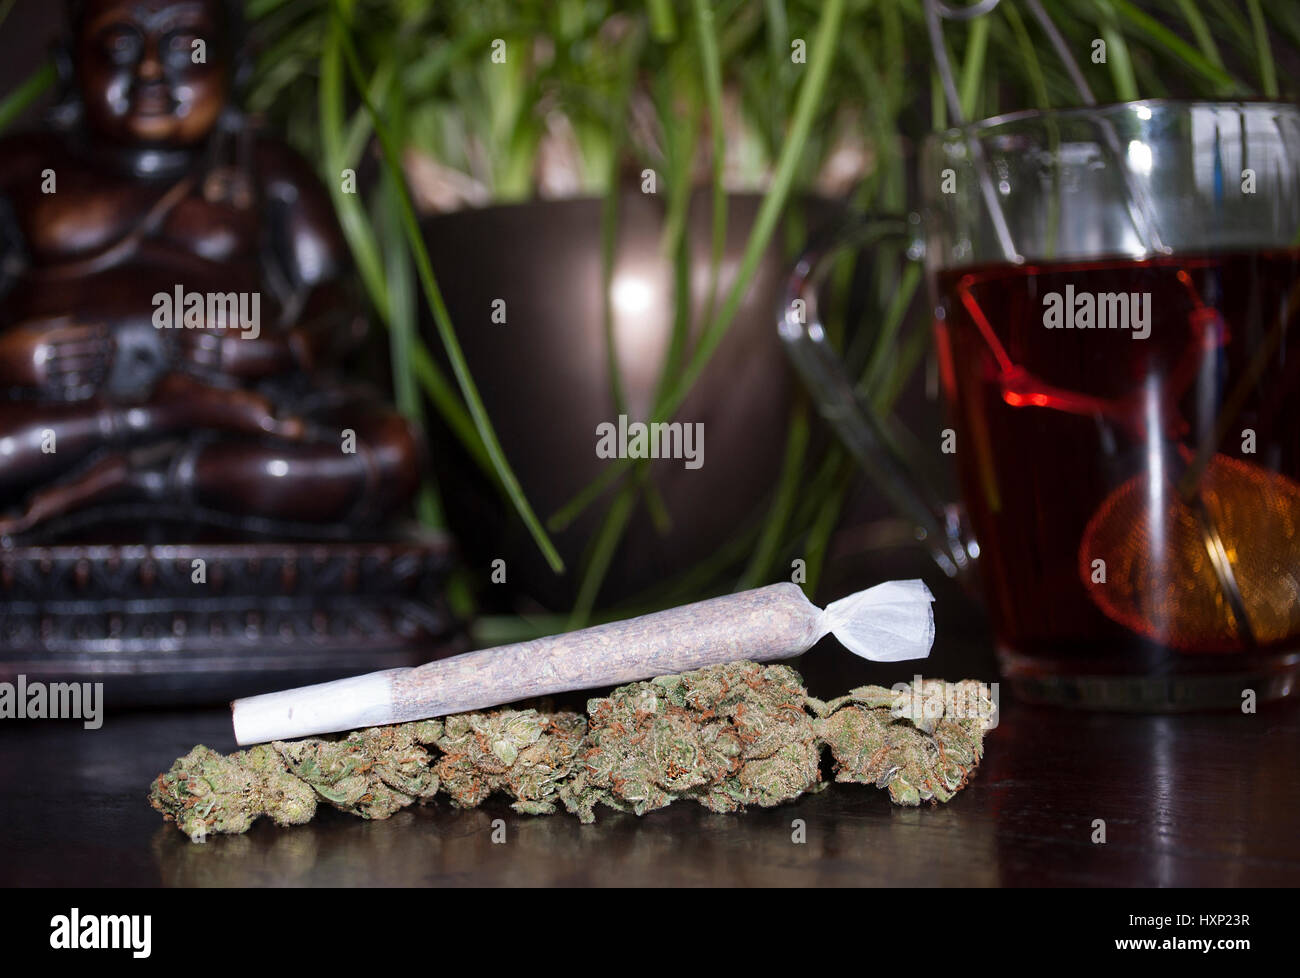 closeup of rolled marijuana weed joint and buds on wooden background, with Buddha statuette and cup of rooibos tea Stock Photo